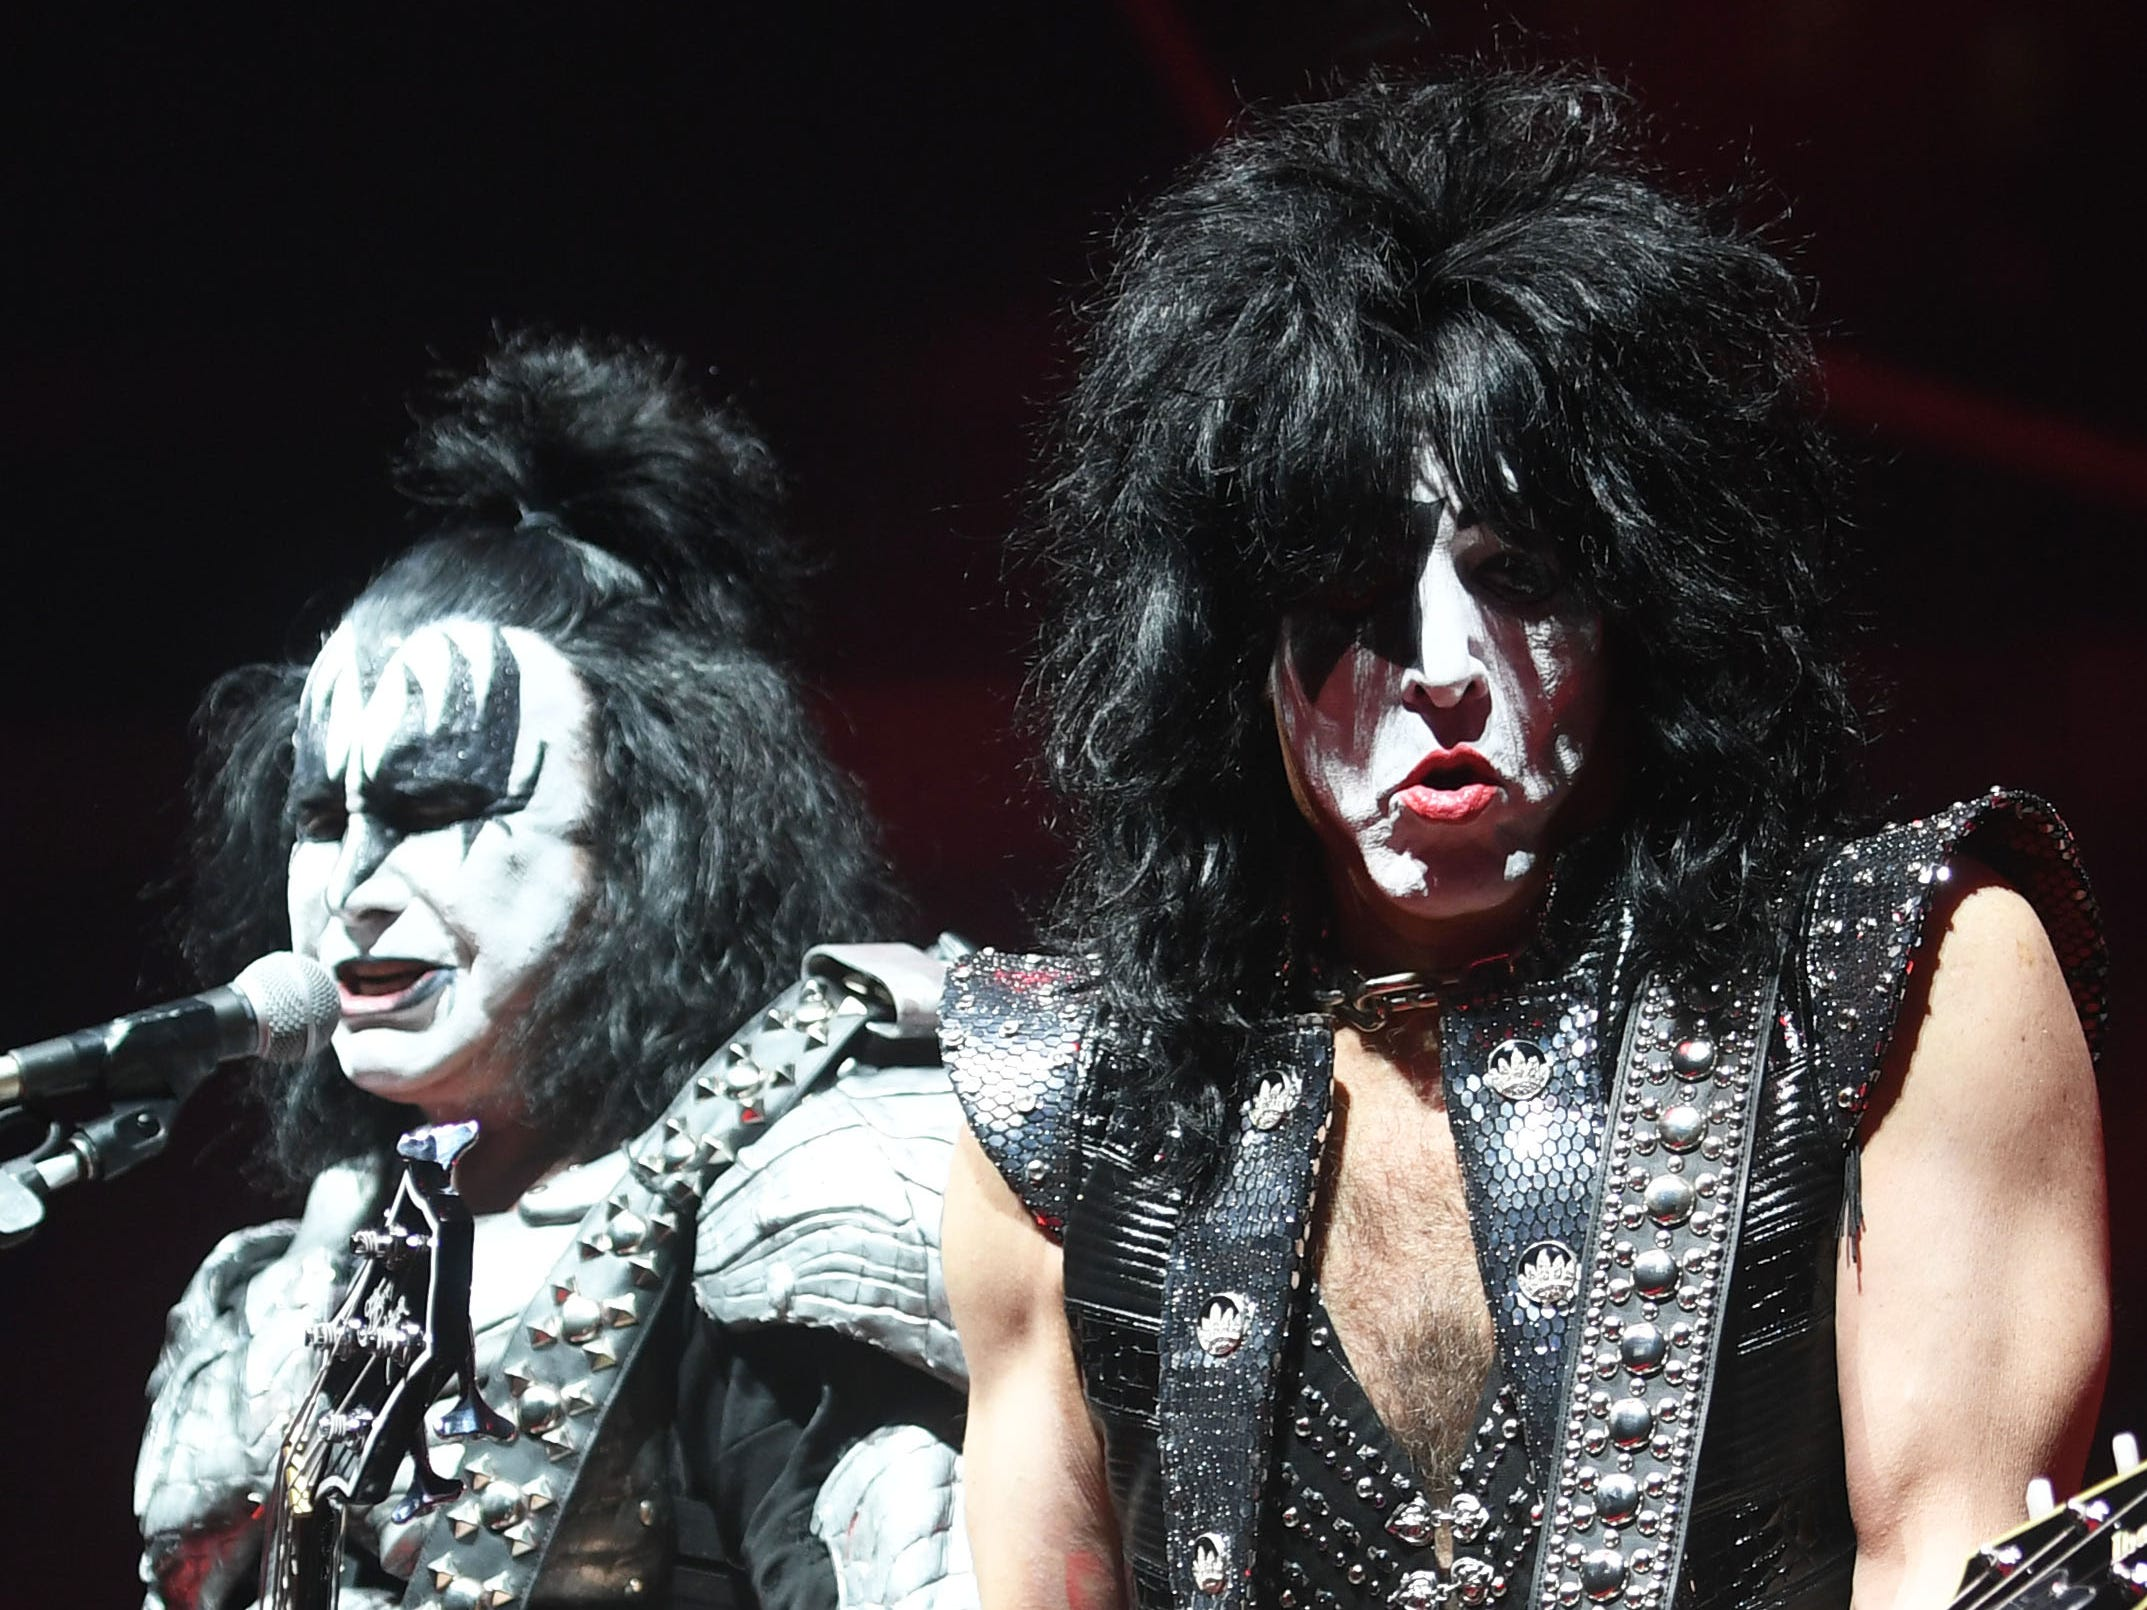 KISS performs during the KISS End of the Road World Tour Wednesday, March 6, at the Denny Sanford Premier Center in Sioux Falls. The line up included lead vocalist Paul Stanley, bassist Gene Simmons, guitarist Tommy Thayer and drummer Eric Singer.